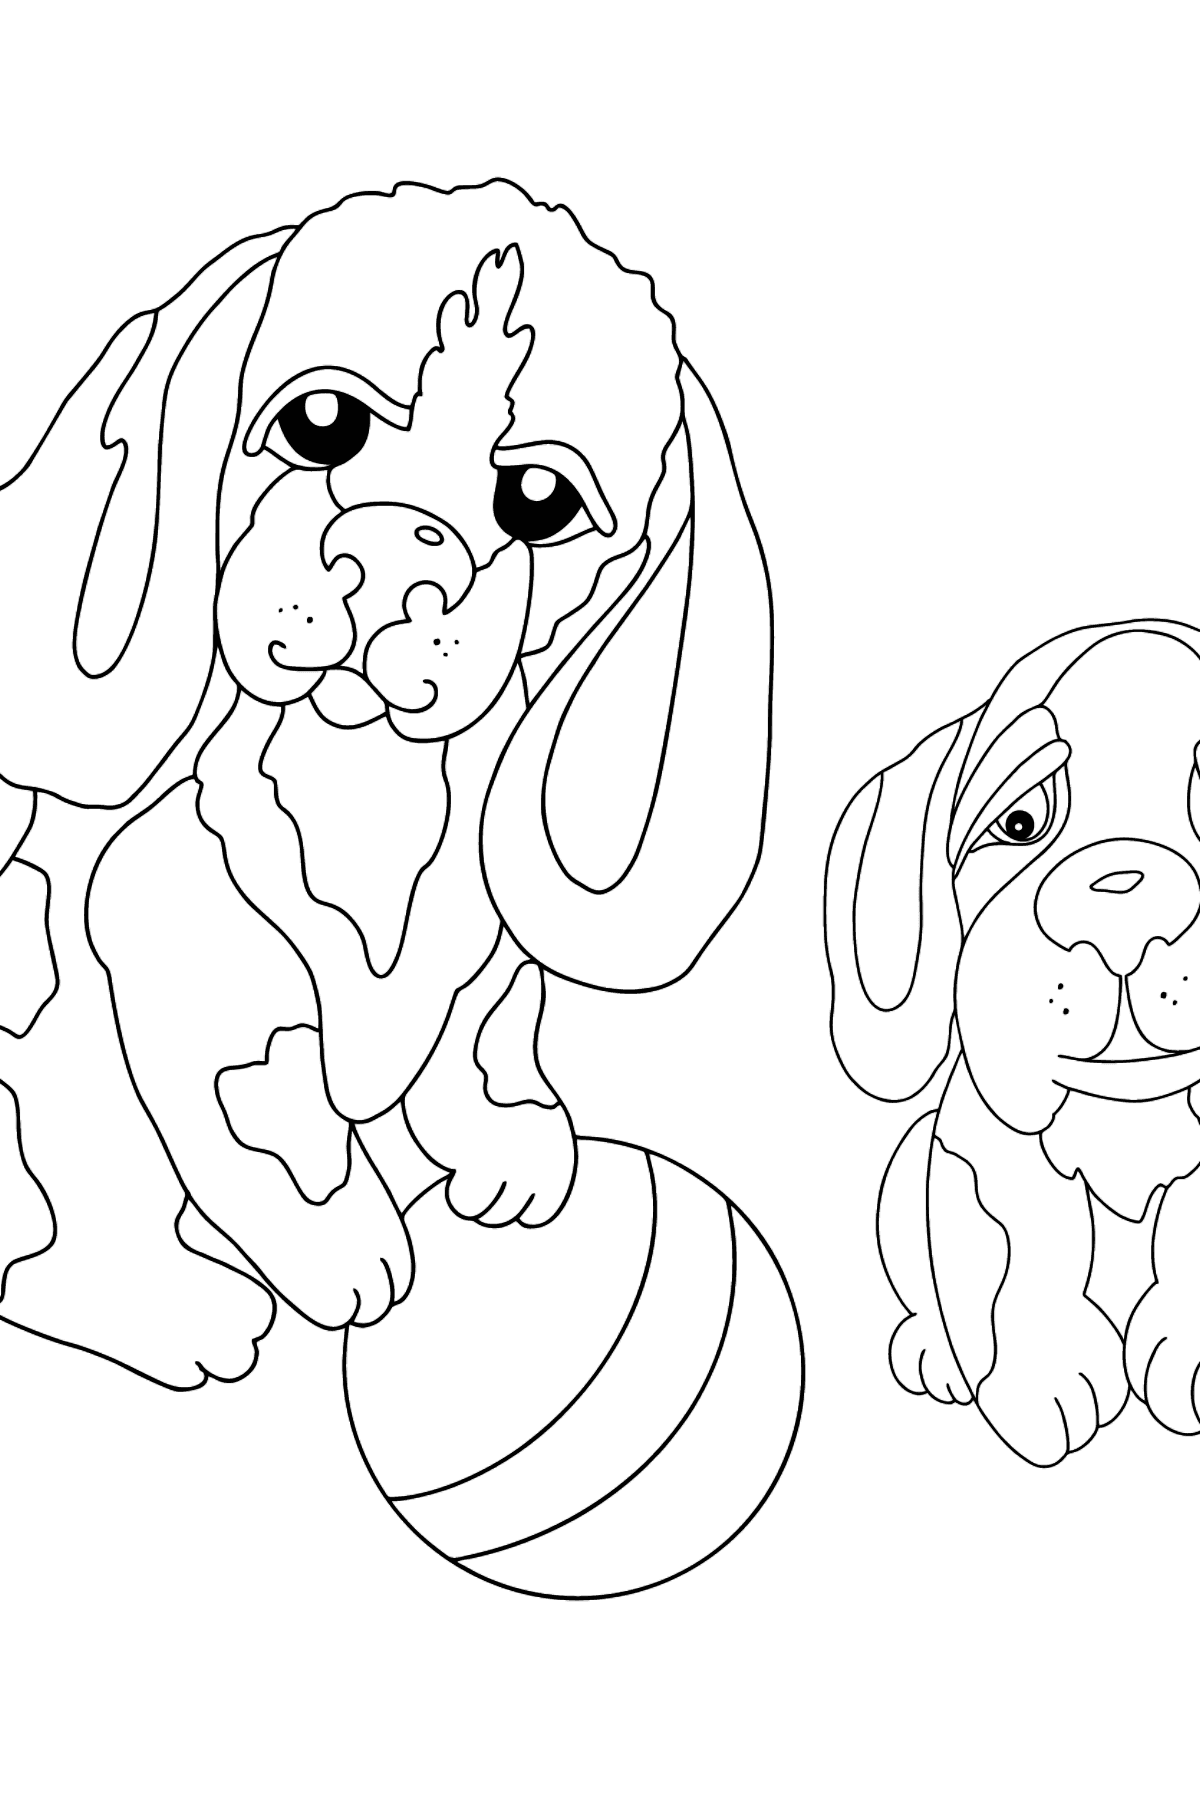 Coloring Page - Dogs are Playing with a Ball - Coloring Pages for Kids